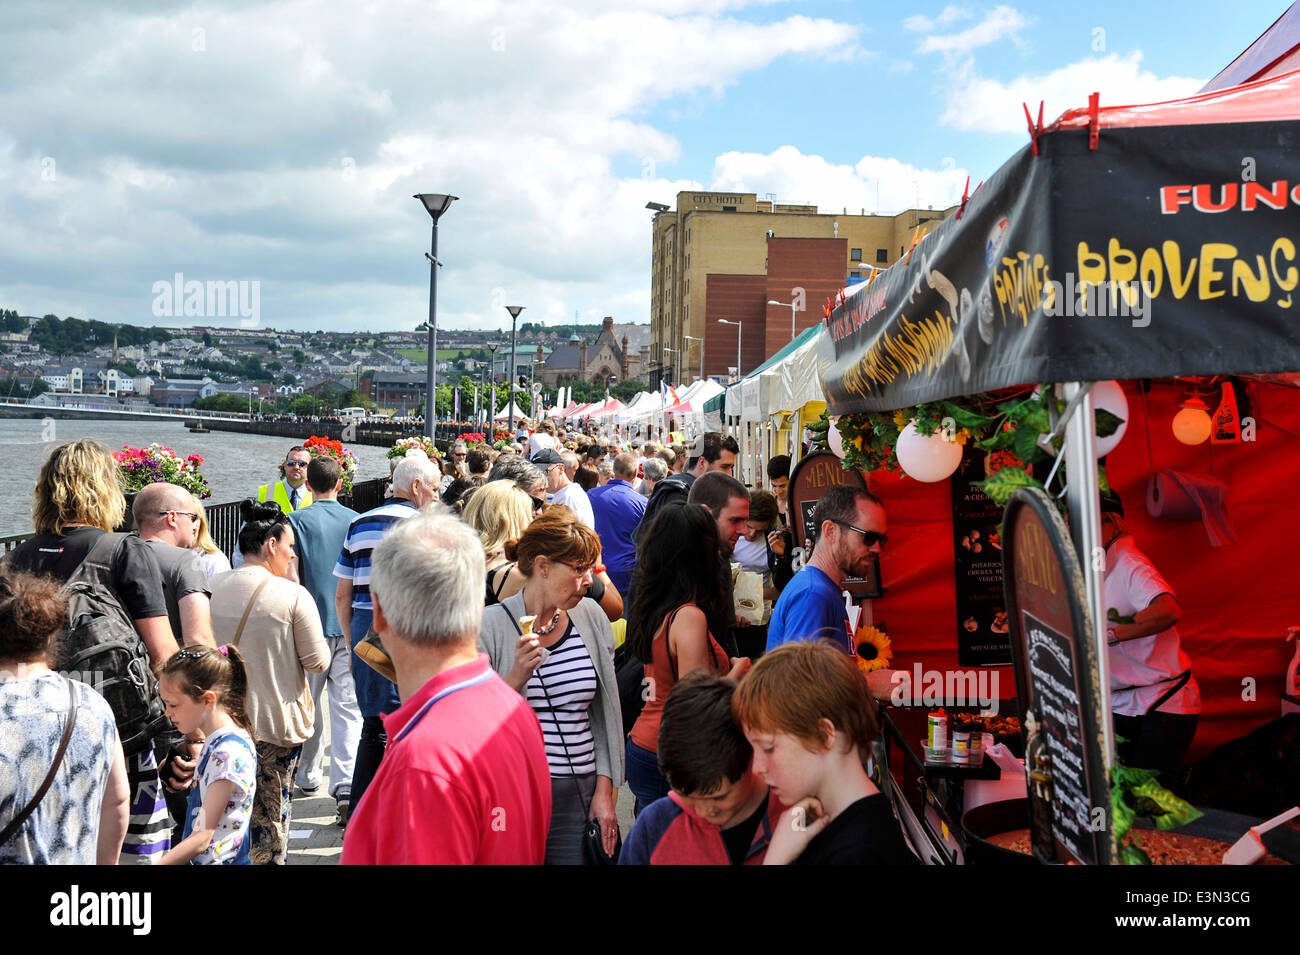 Crowds of people visit the outdoor markets on Queens Quay, Derry, Londonderry, Northern Ireland, during the Maritime - Stock Image